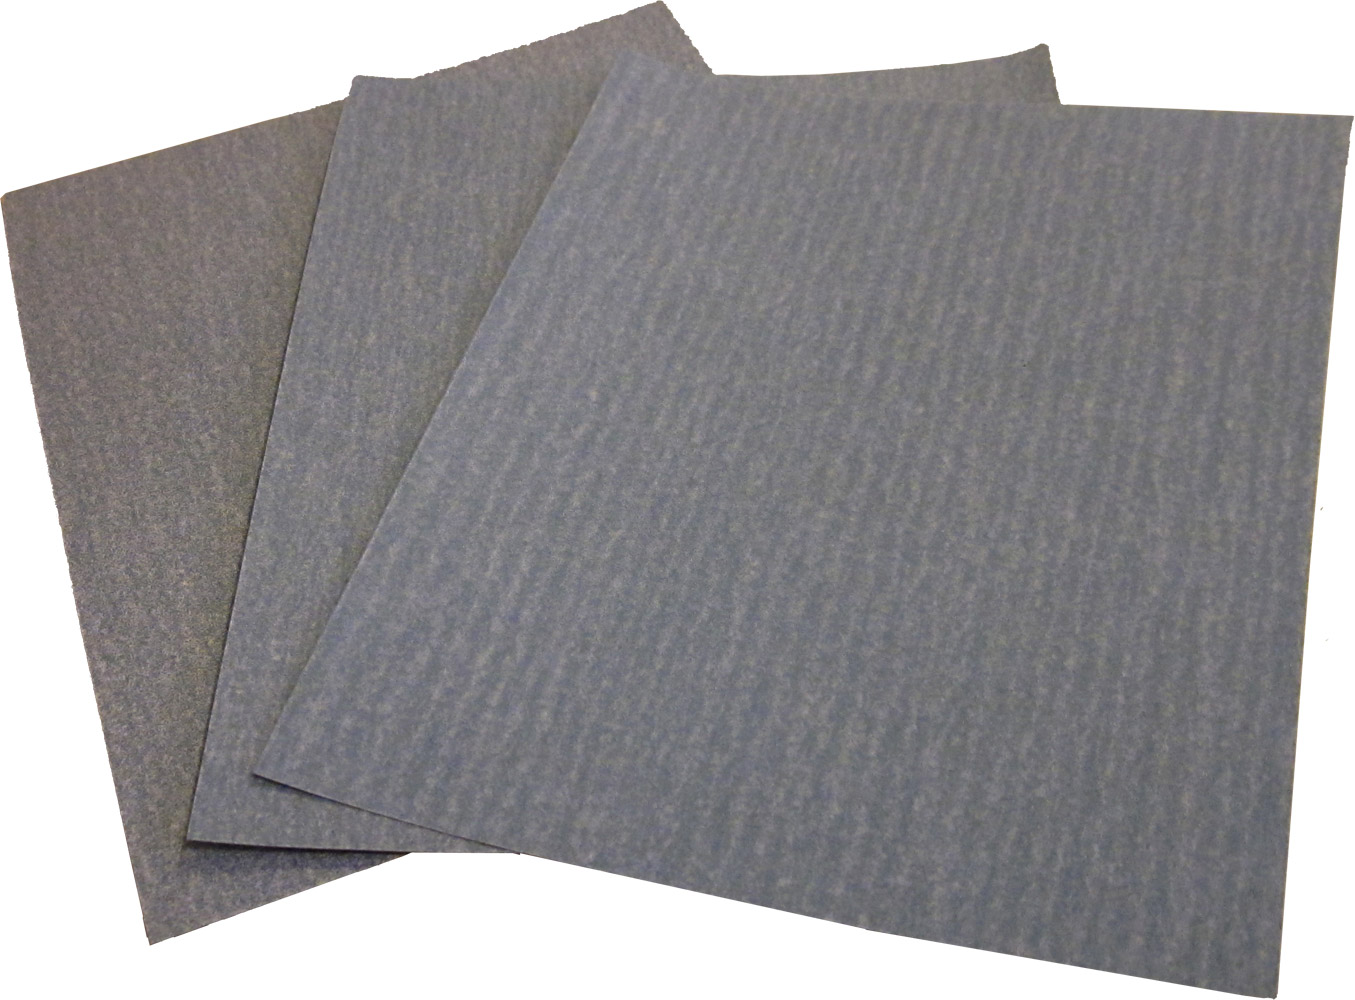 4 Sanding sheets Grit 150 to 600 - Click Image to Close